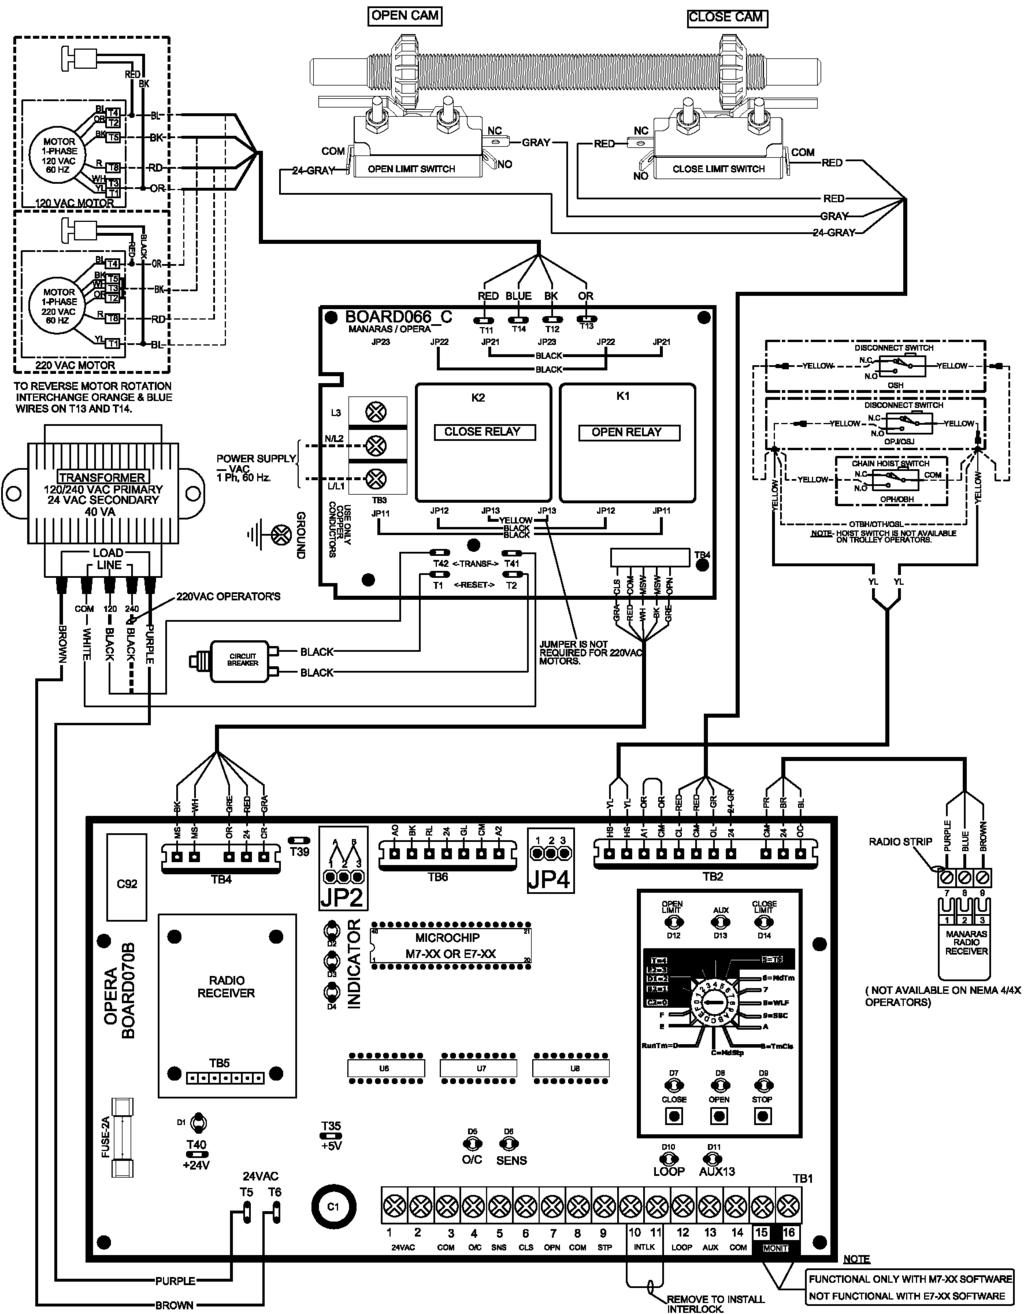 3 Electrical Drawings 40 3.